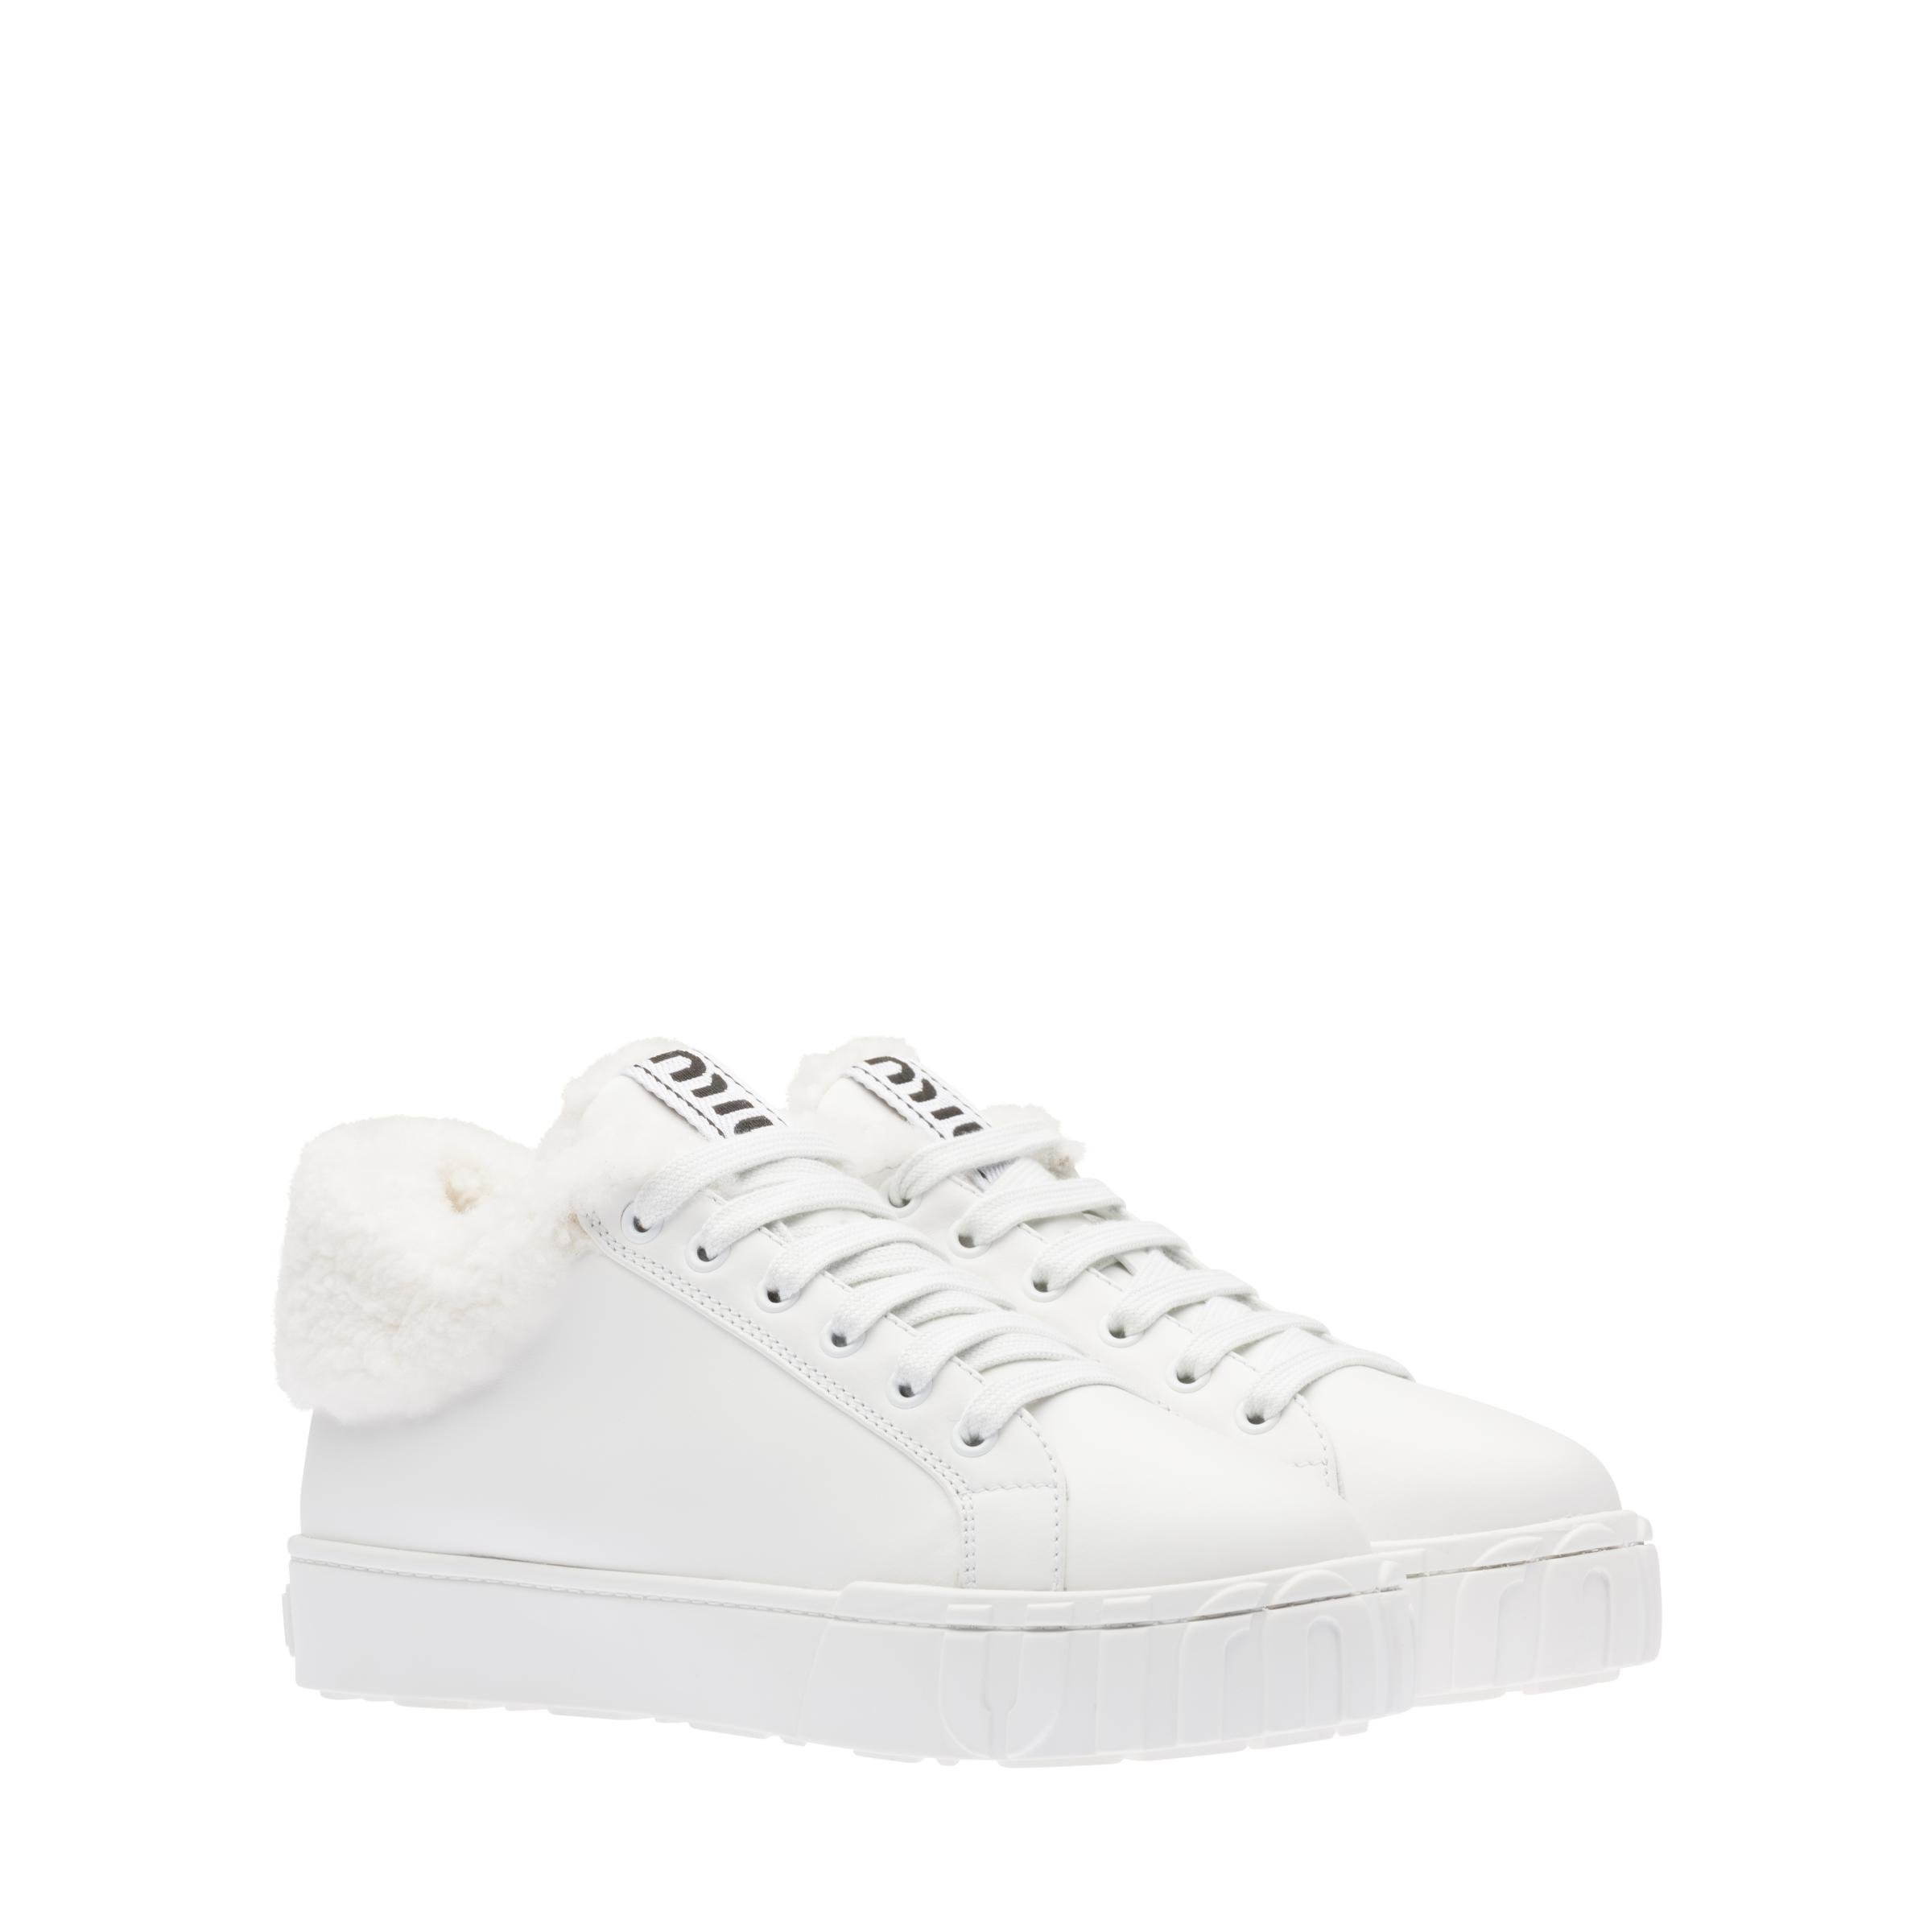 Leather High-top Sneakers Women White